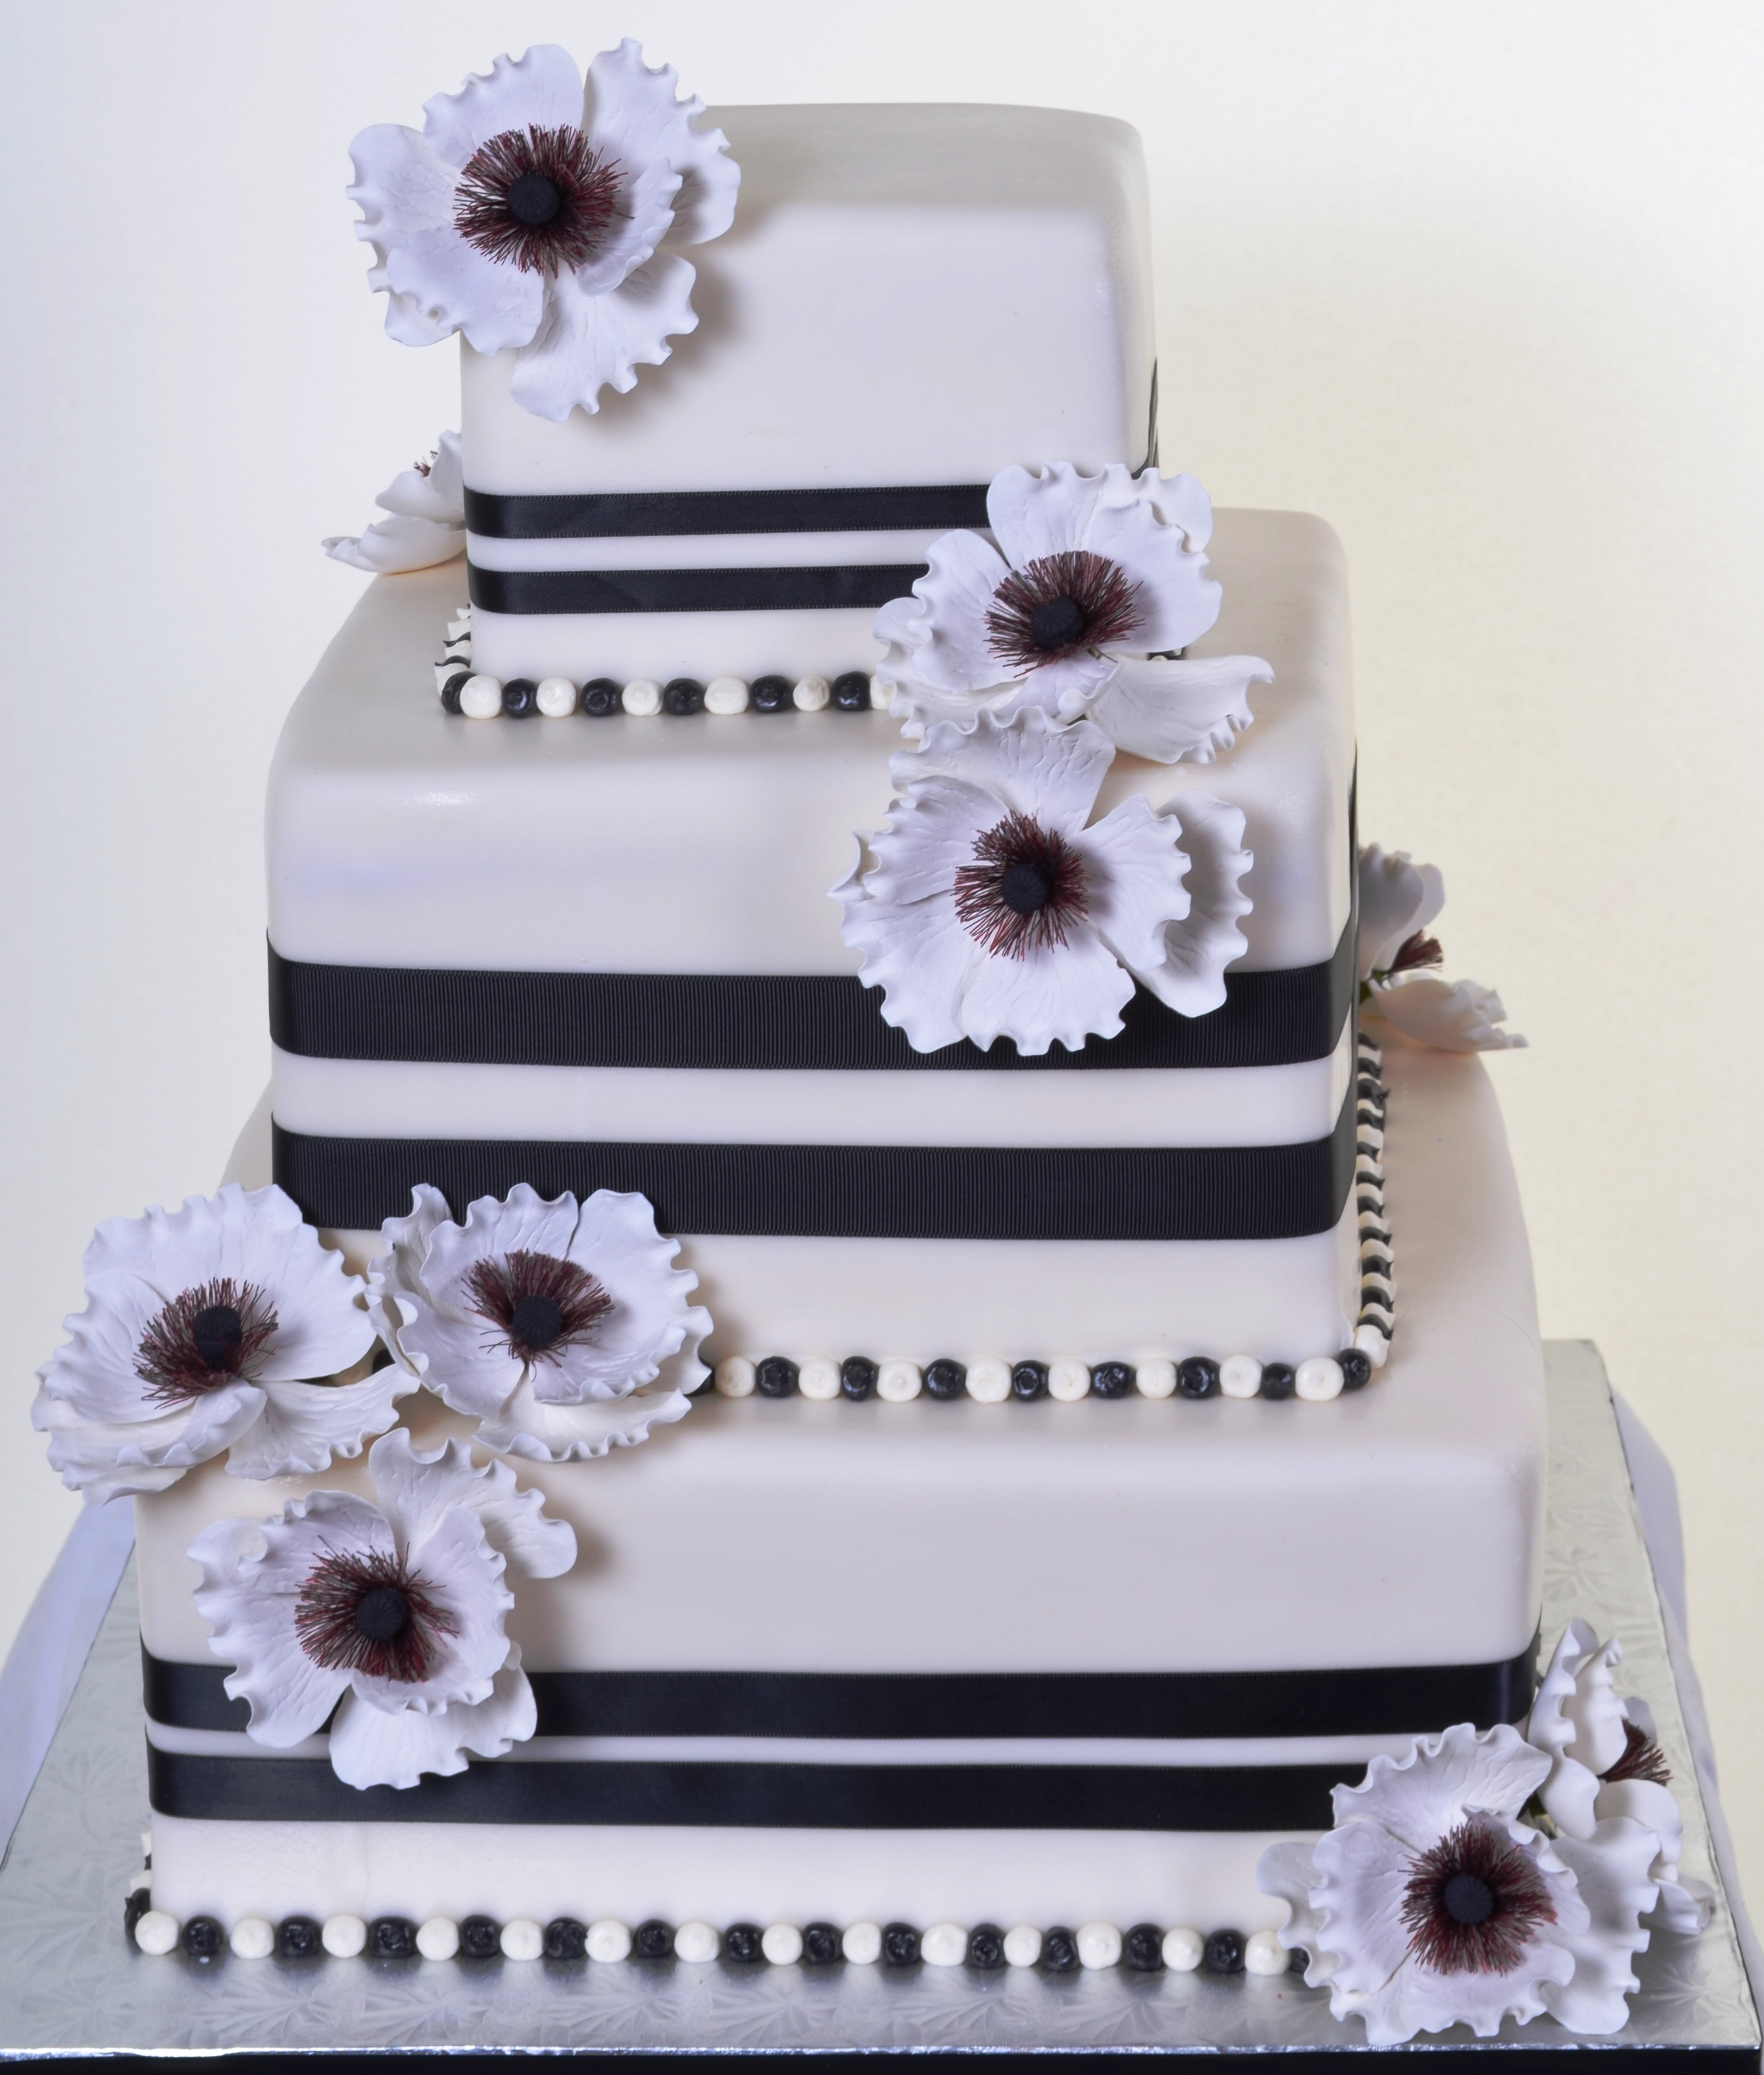 Pastry Palace Wedding Cake 904 - Black and White Squares & Peonies